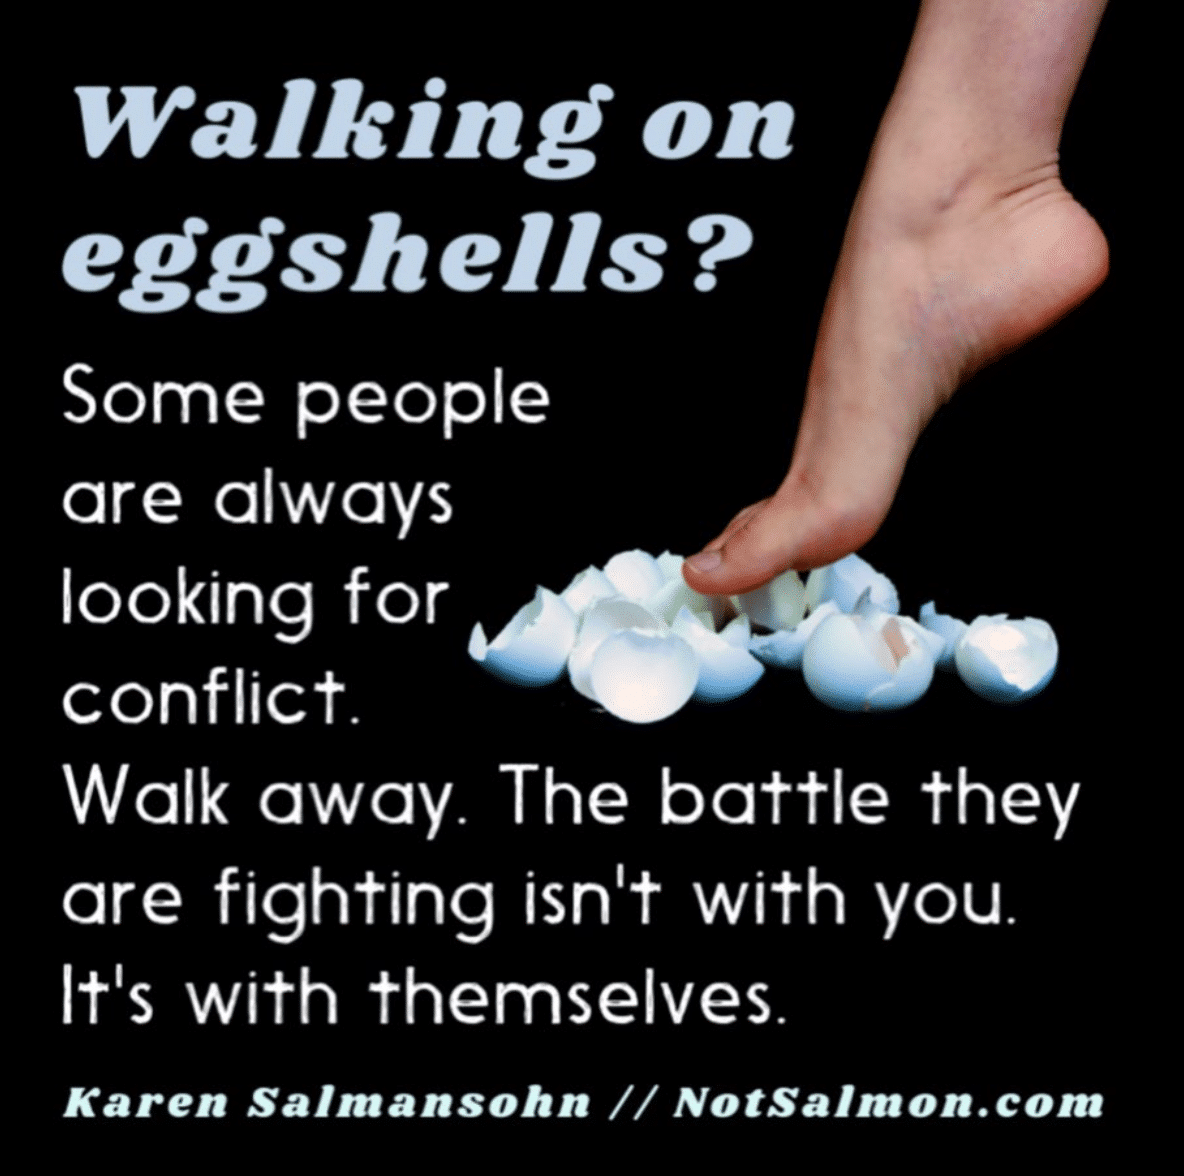 dating advice quotes walking on eggshells